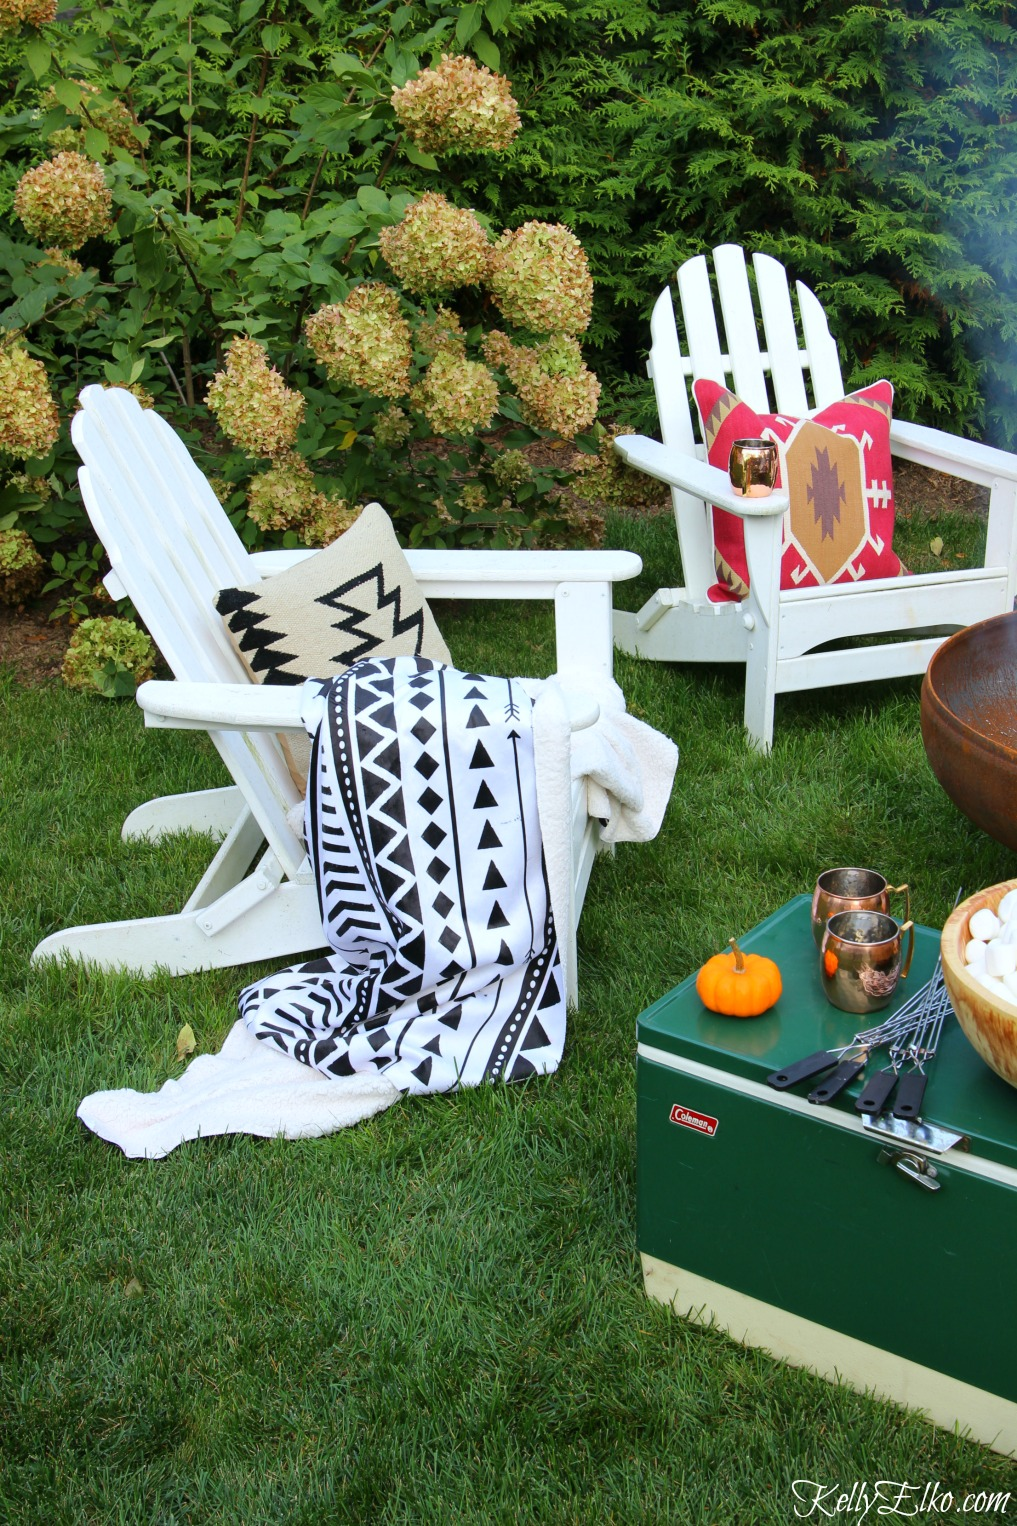 Cozy outdoor seating area - love the boho throws and pillows kellyelko.com